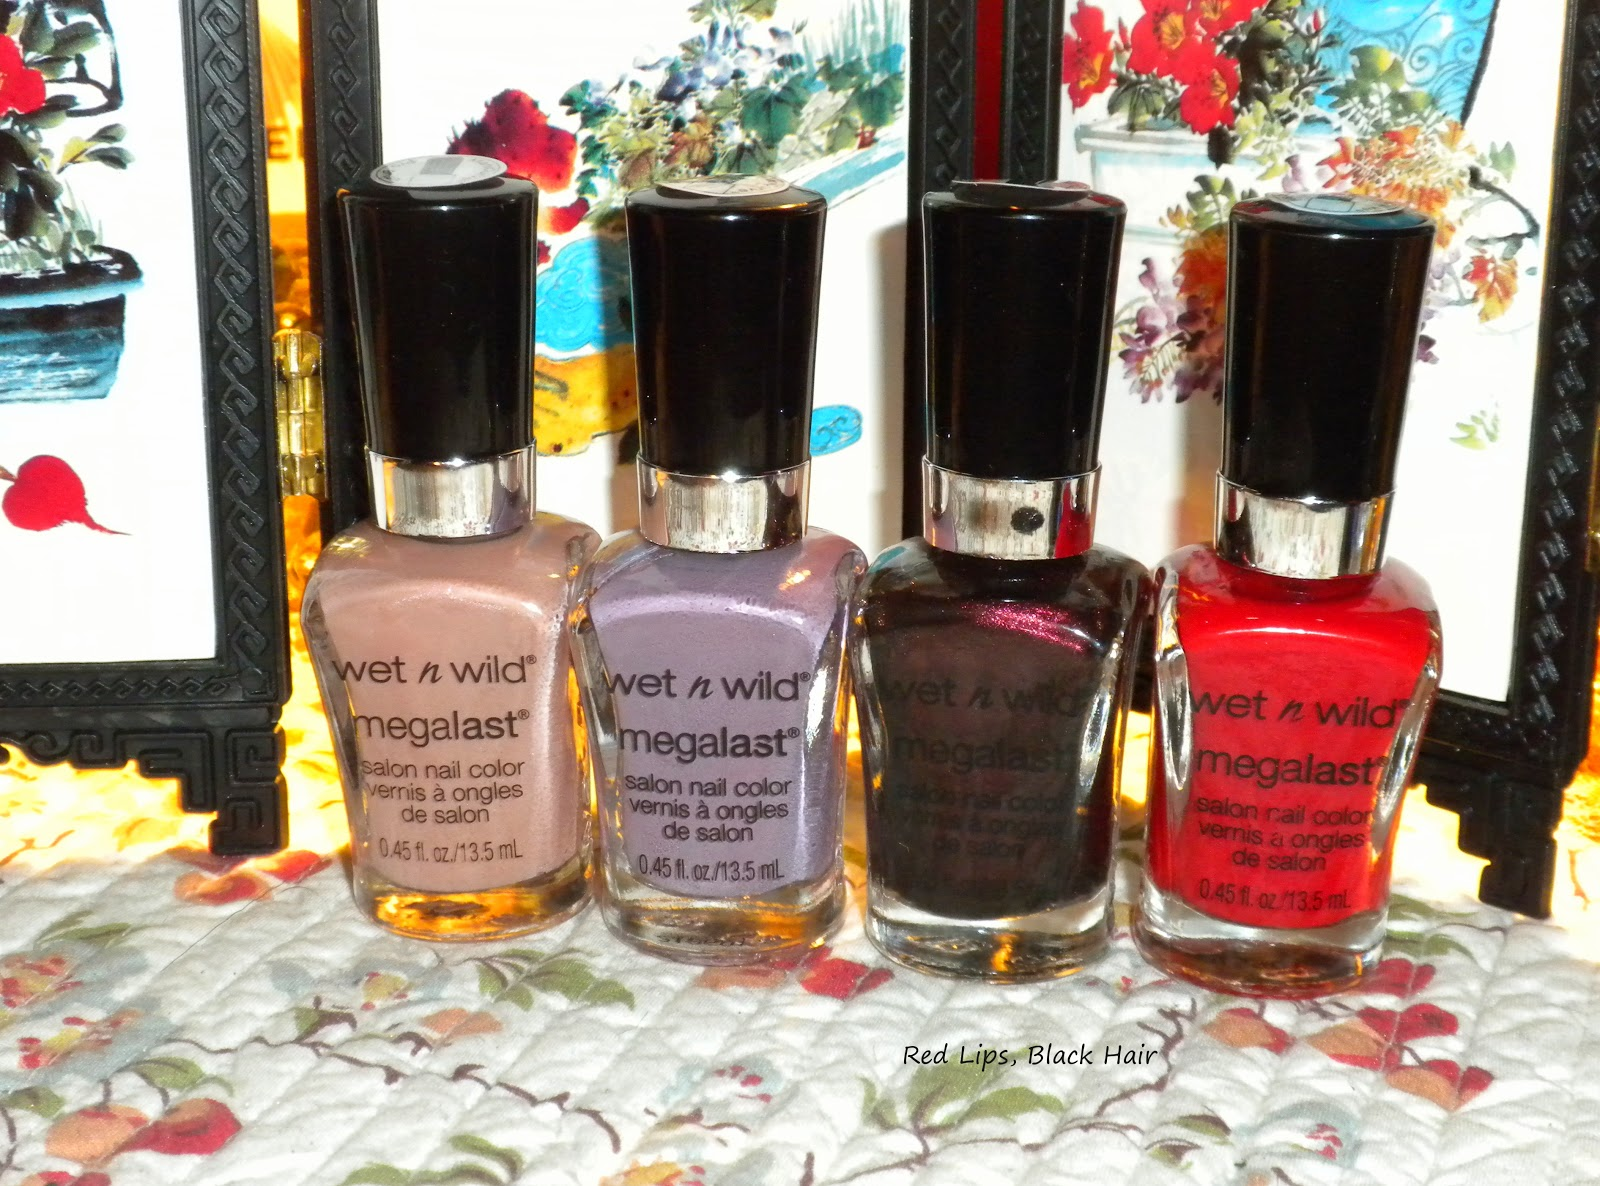 Red Lips, Black Hair: Wet N Wild Megalast Salon Nail Color Haul